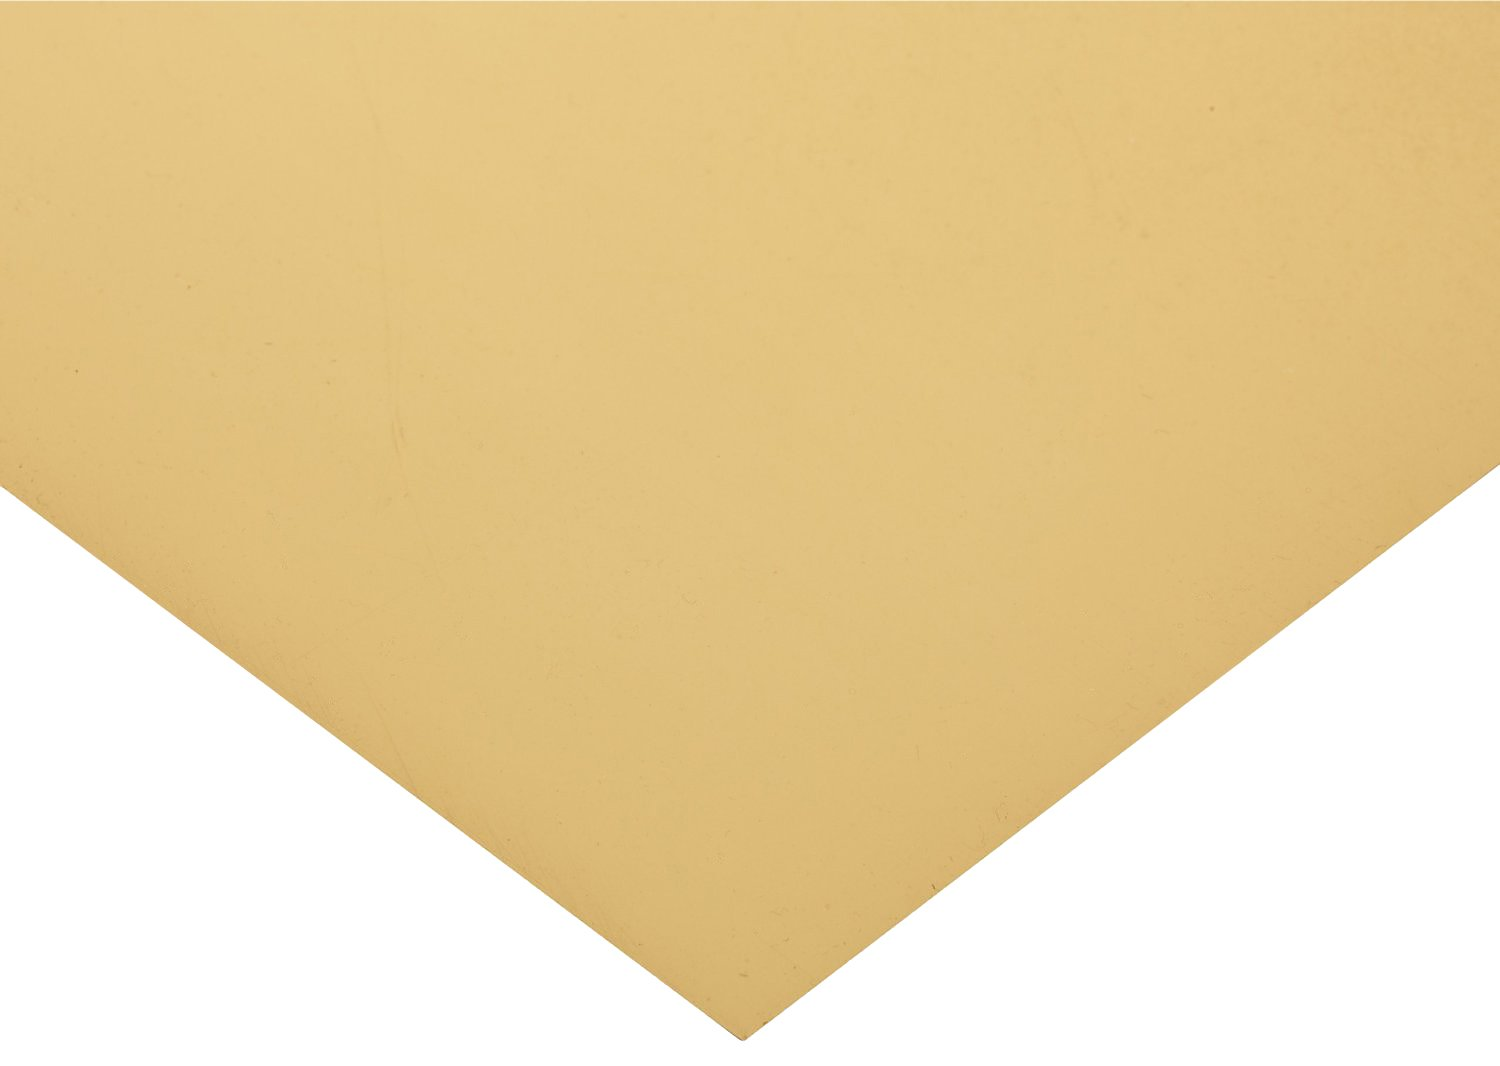 Polyester Shim Stock, Flat Sheet, Tan, 0.004'' Thickness, 10'' Width, 20'' Length (Pack of 10) by Small Parts